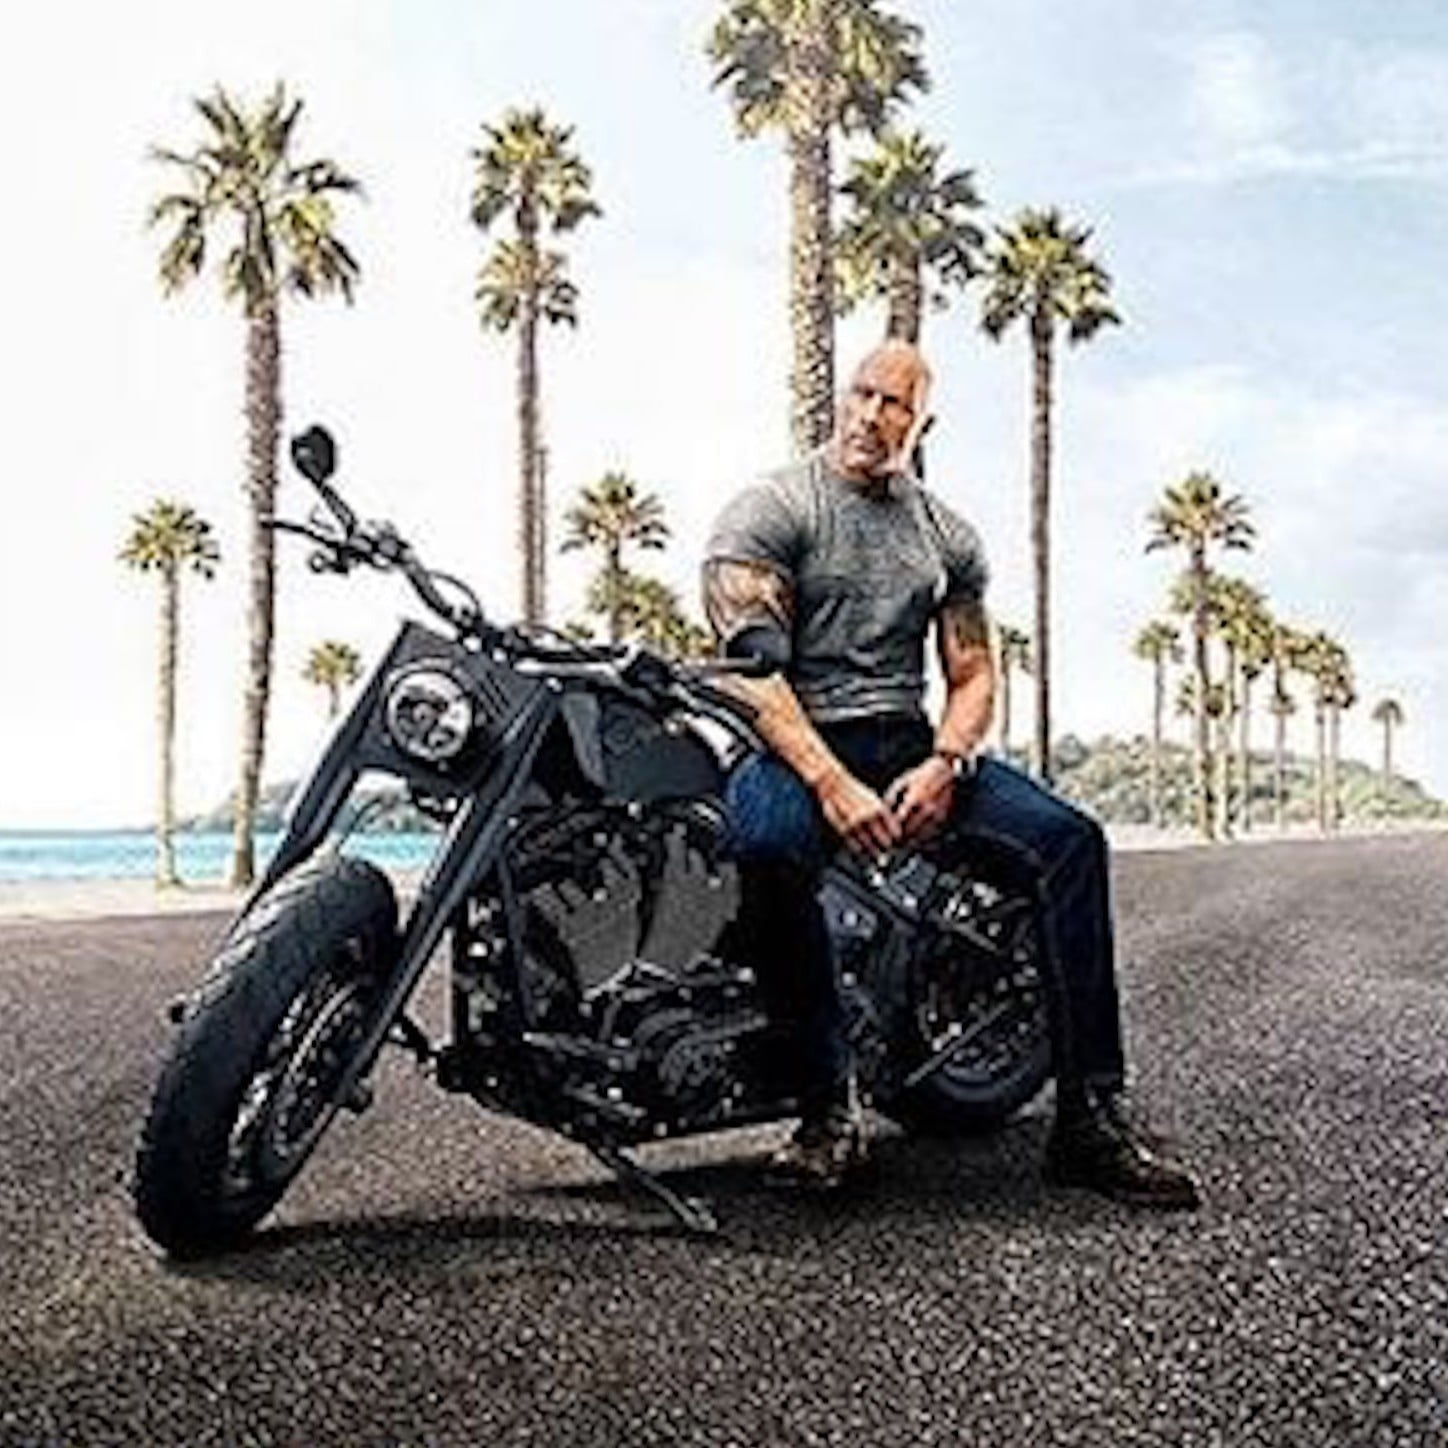 Hobbs And Shaw Movie Posters Popsugar Entertainment